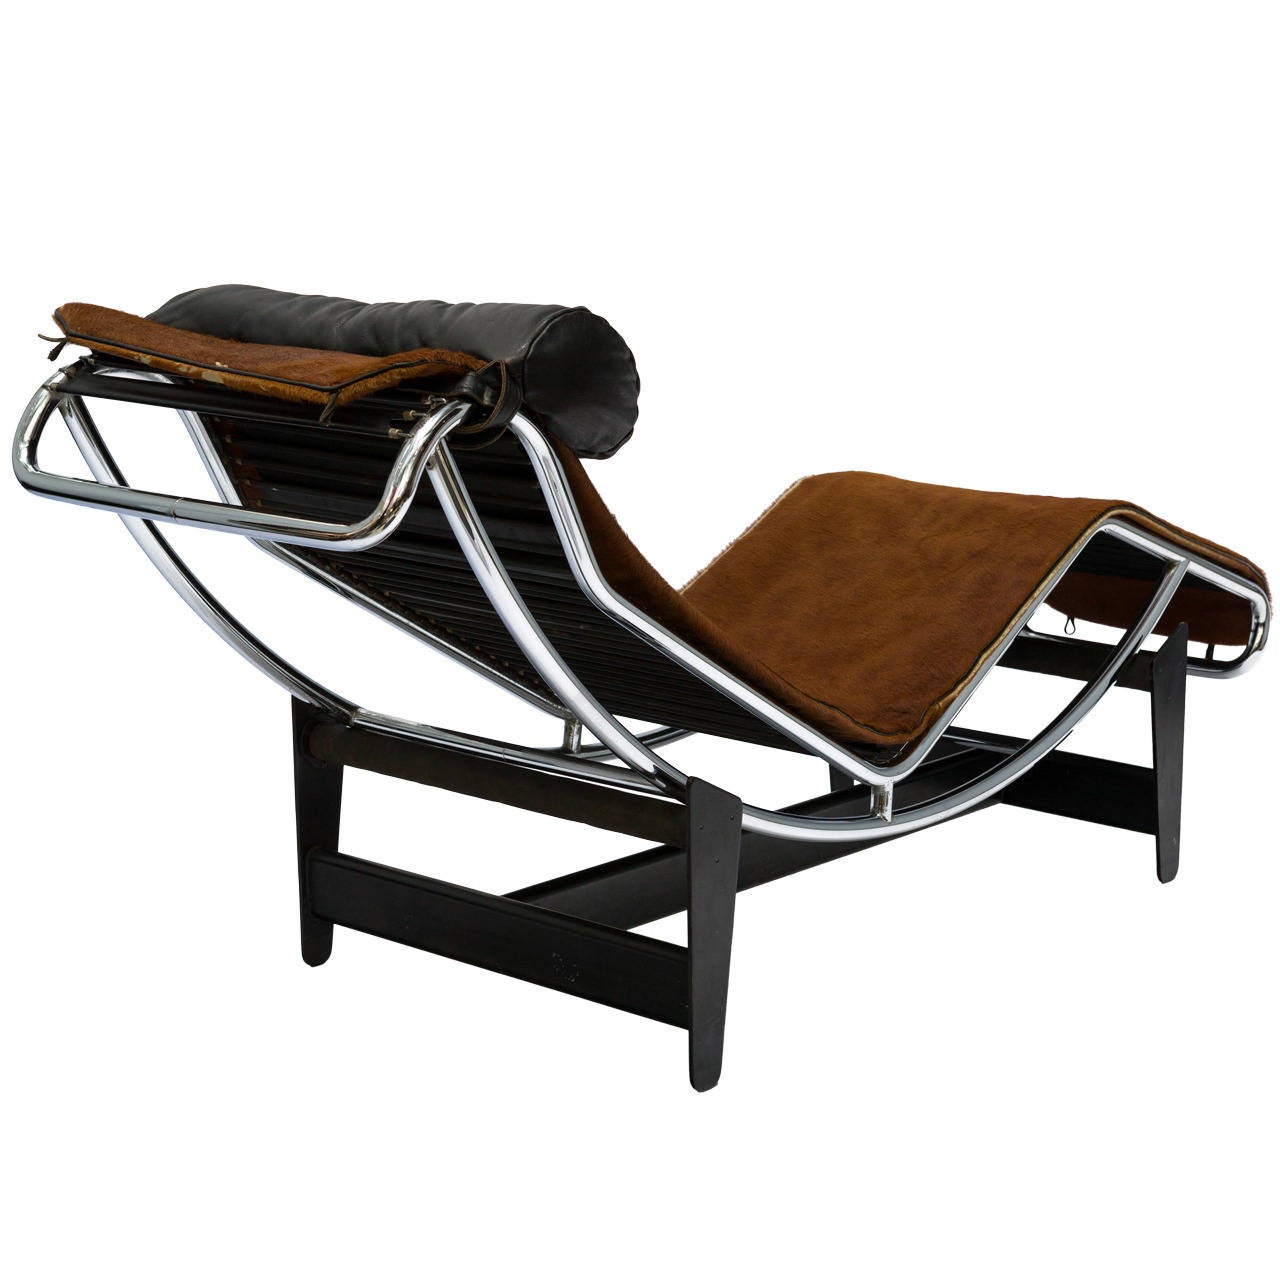 Le corbusier lc4 chaise lounge chair in cowhide for sale for Chaise longue le corbusier ebay